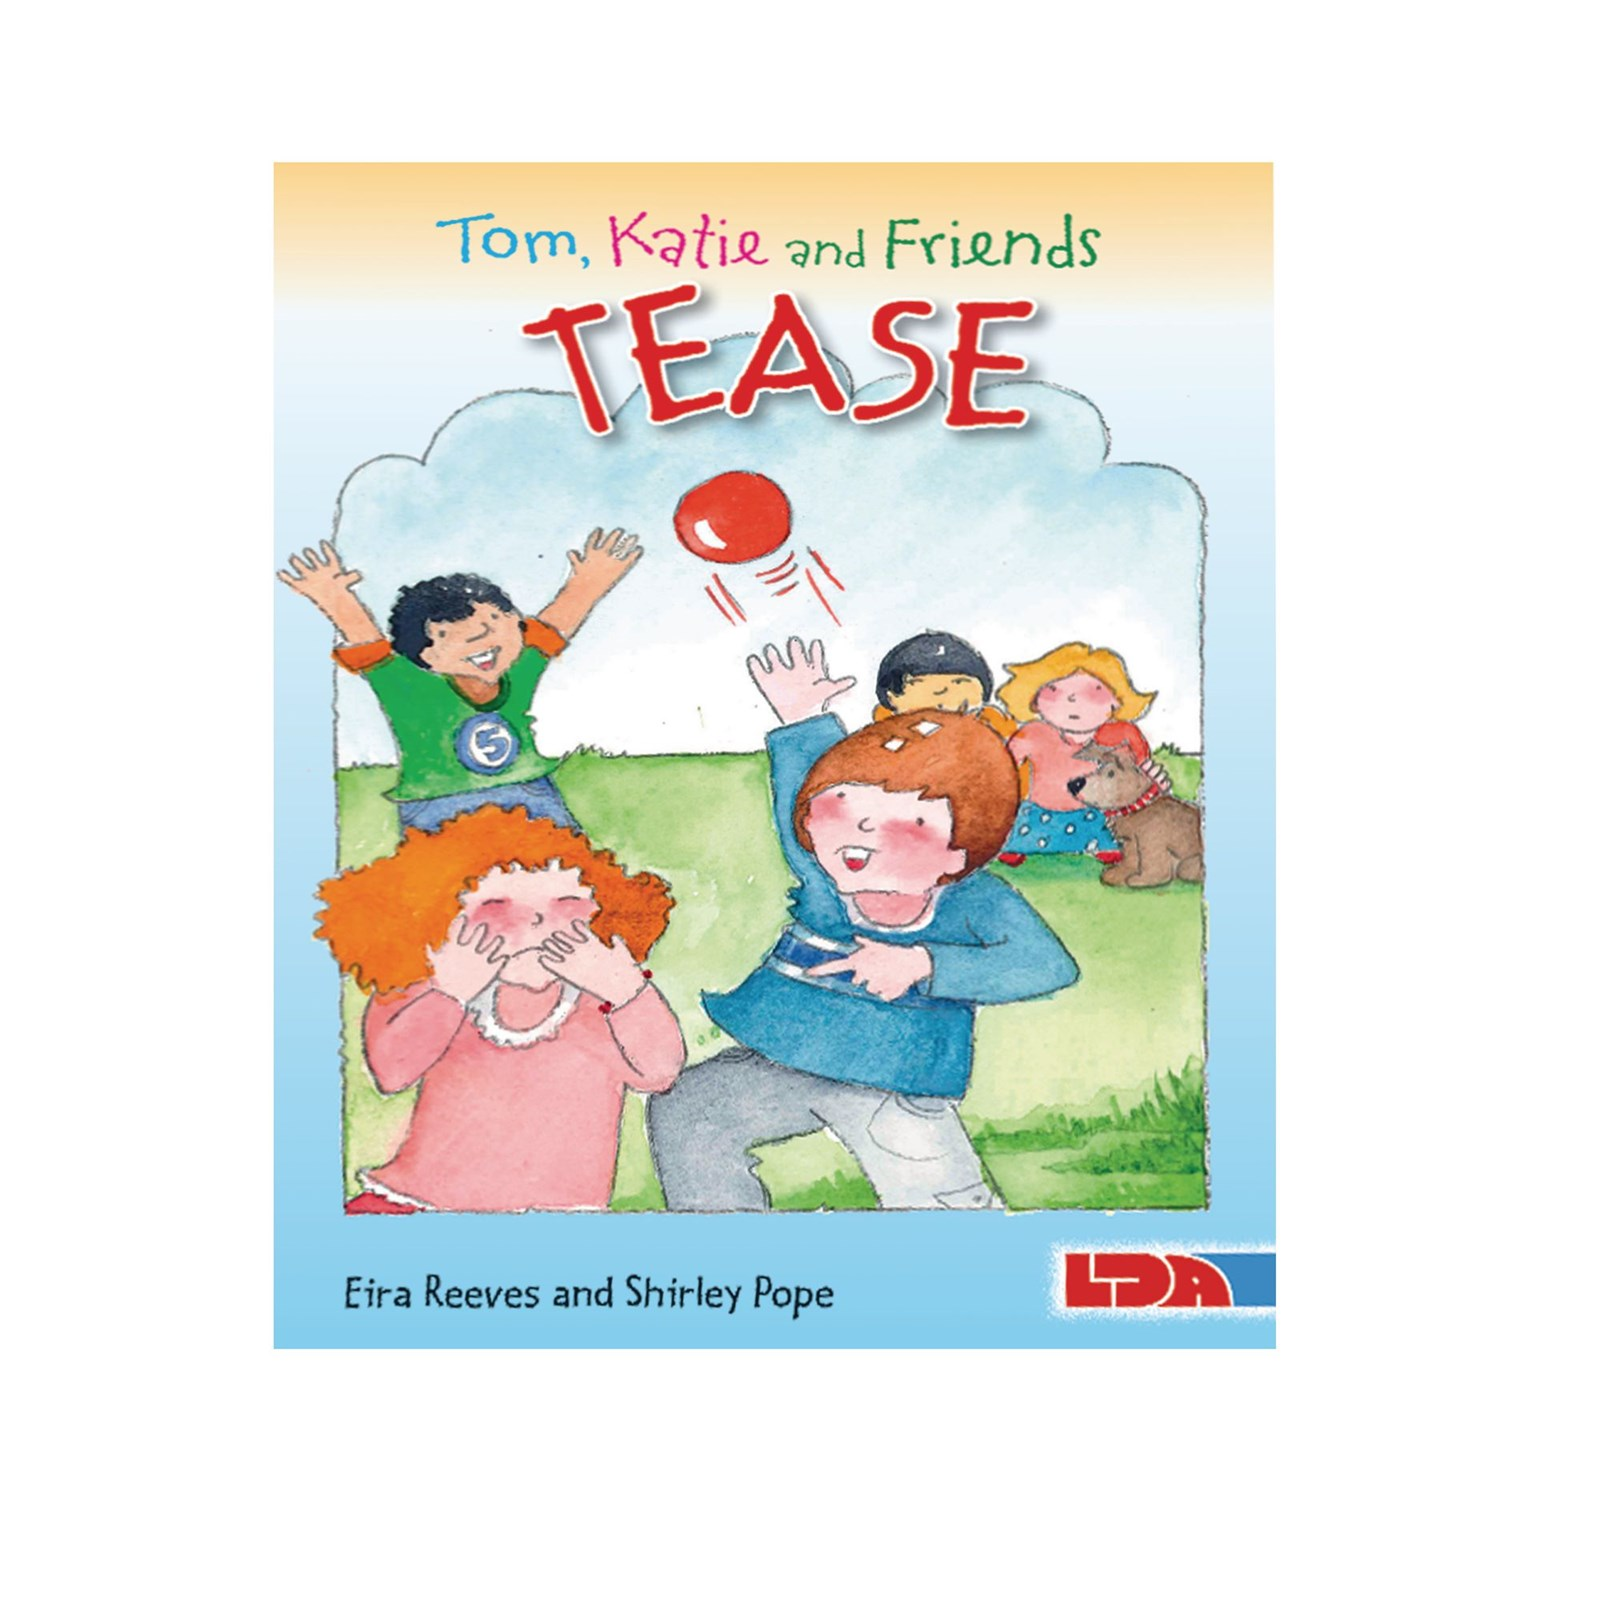 Tom, Katie and Friends Tease Book